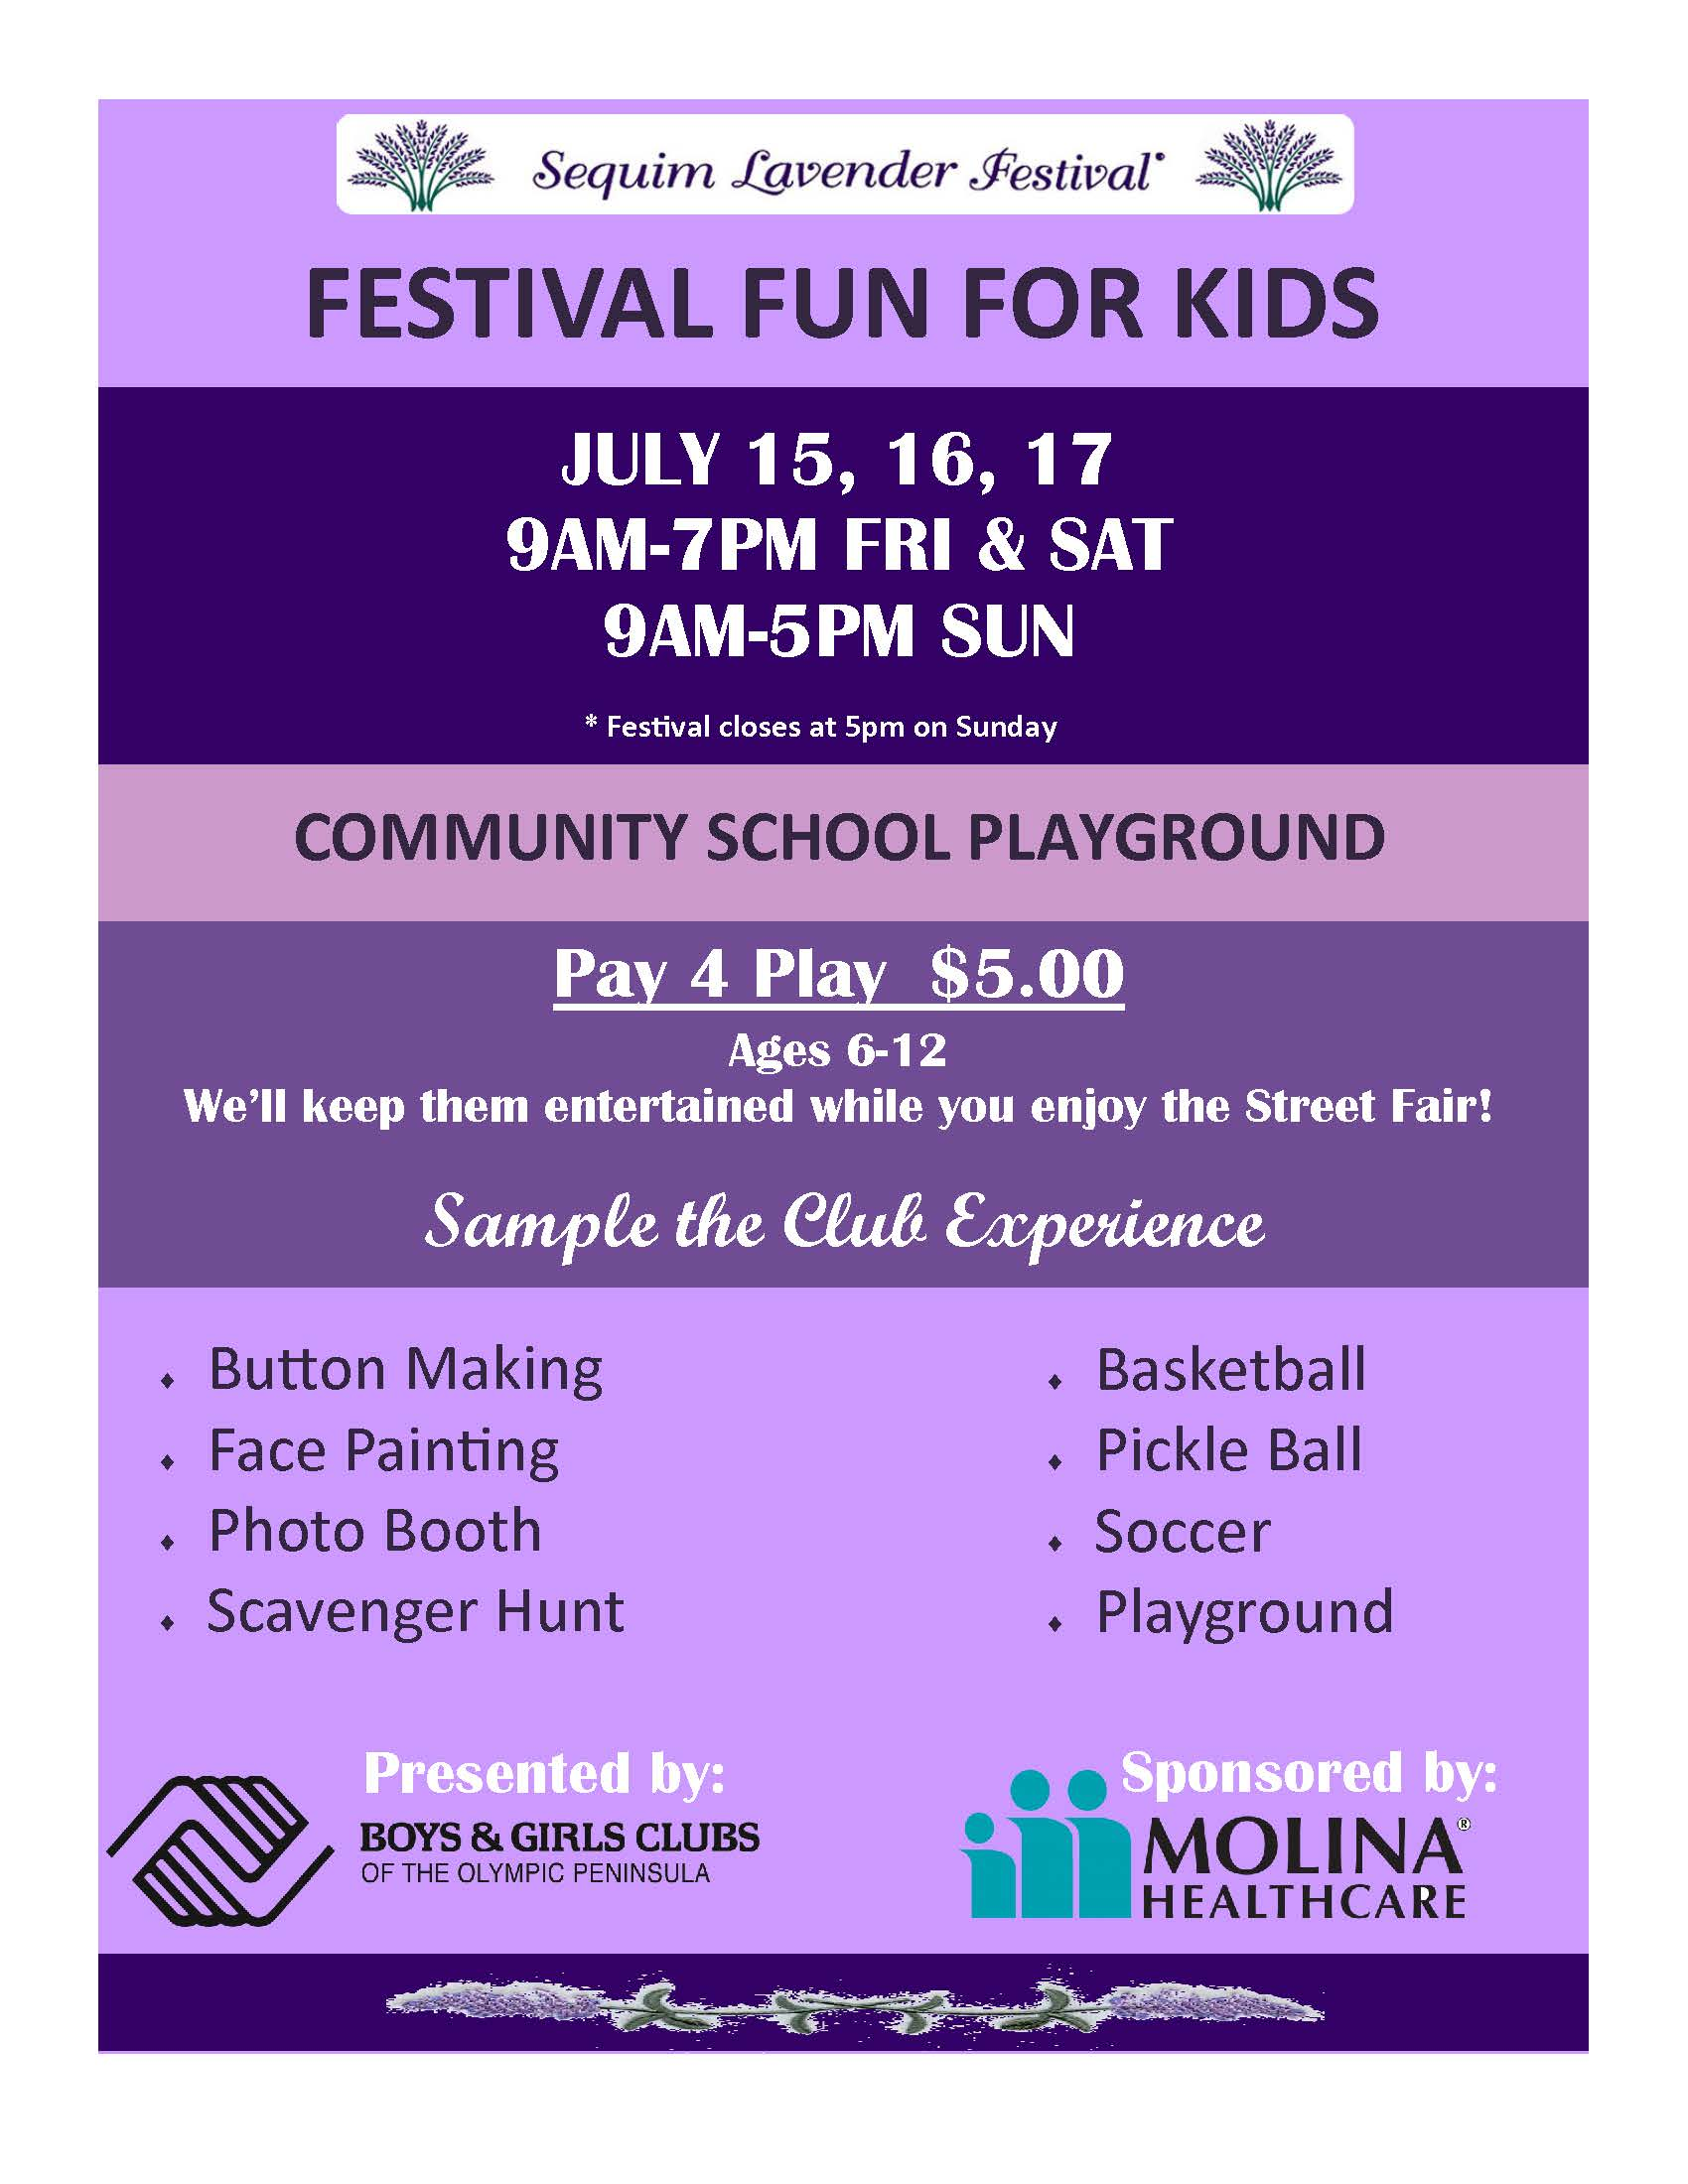 lavendar Festival Fun For Kids flyer.jpg